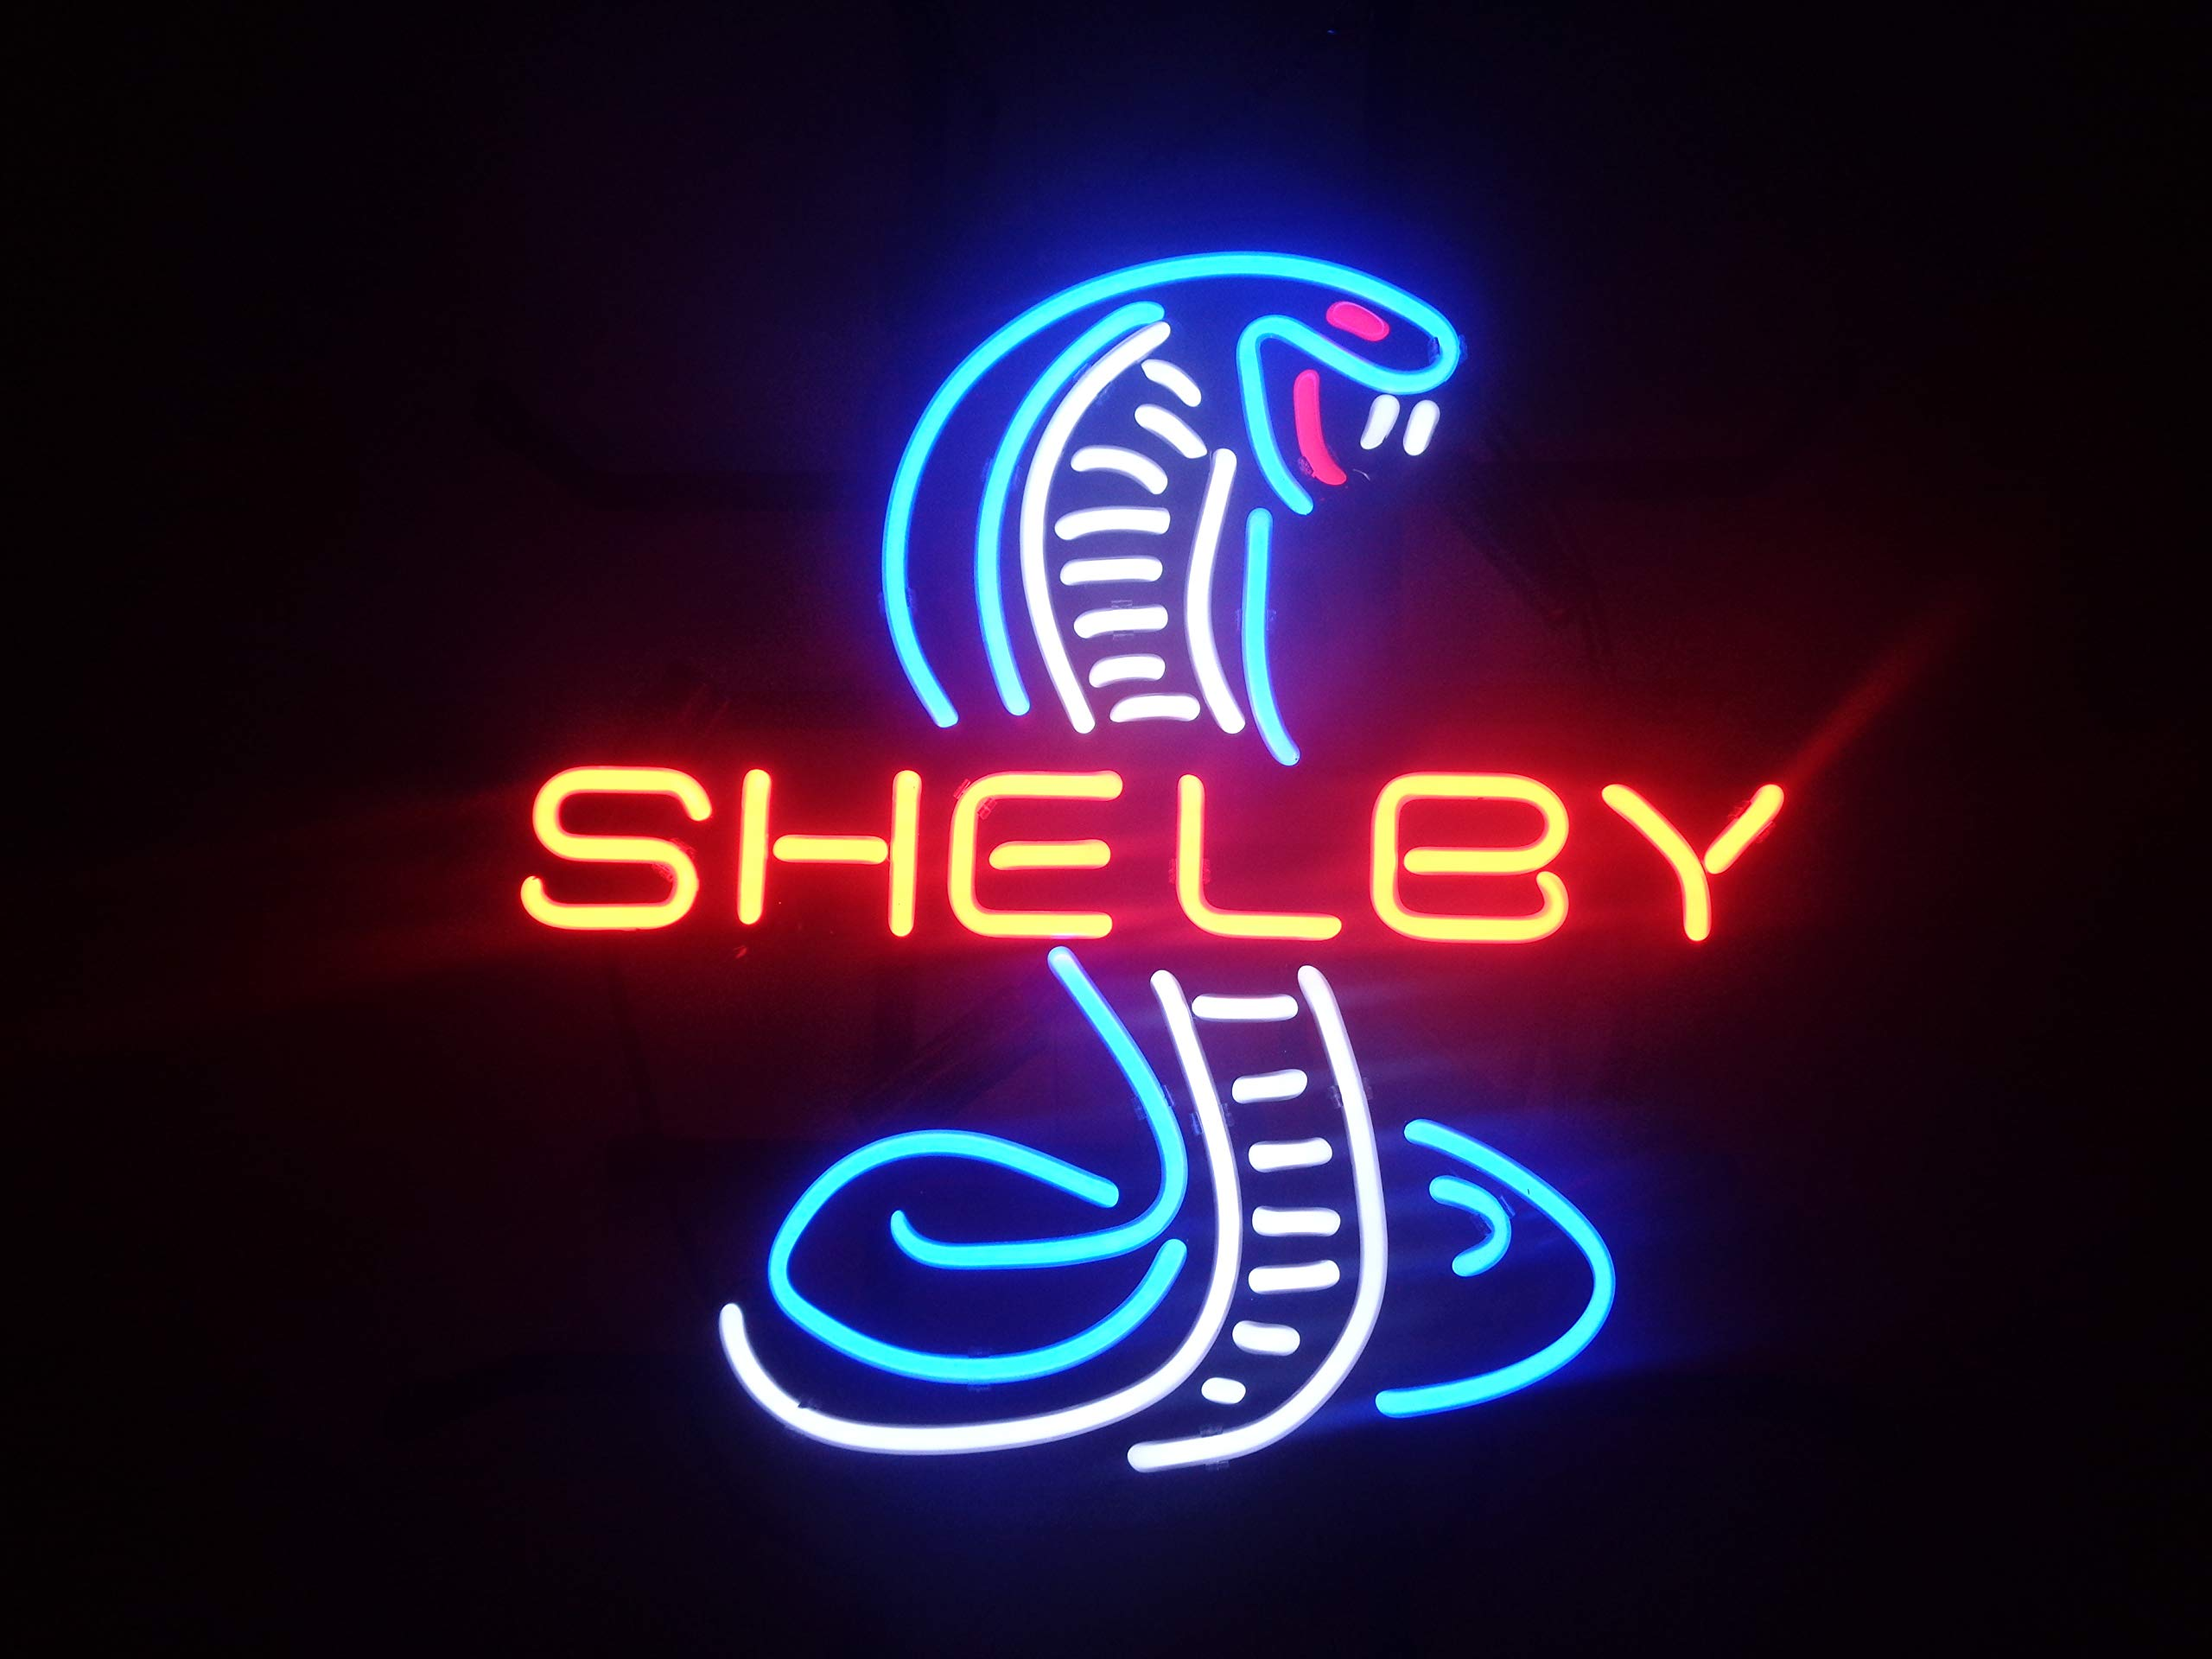 Shelby Neon Sign 17''x13'' Real Glass Neon Sign Light for Beer Bar Pub Garage Room.